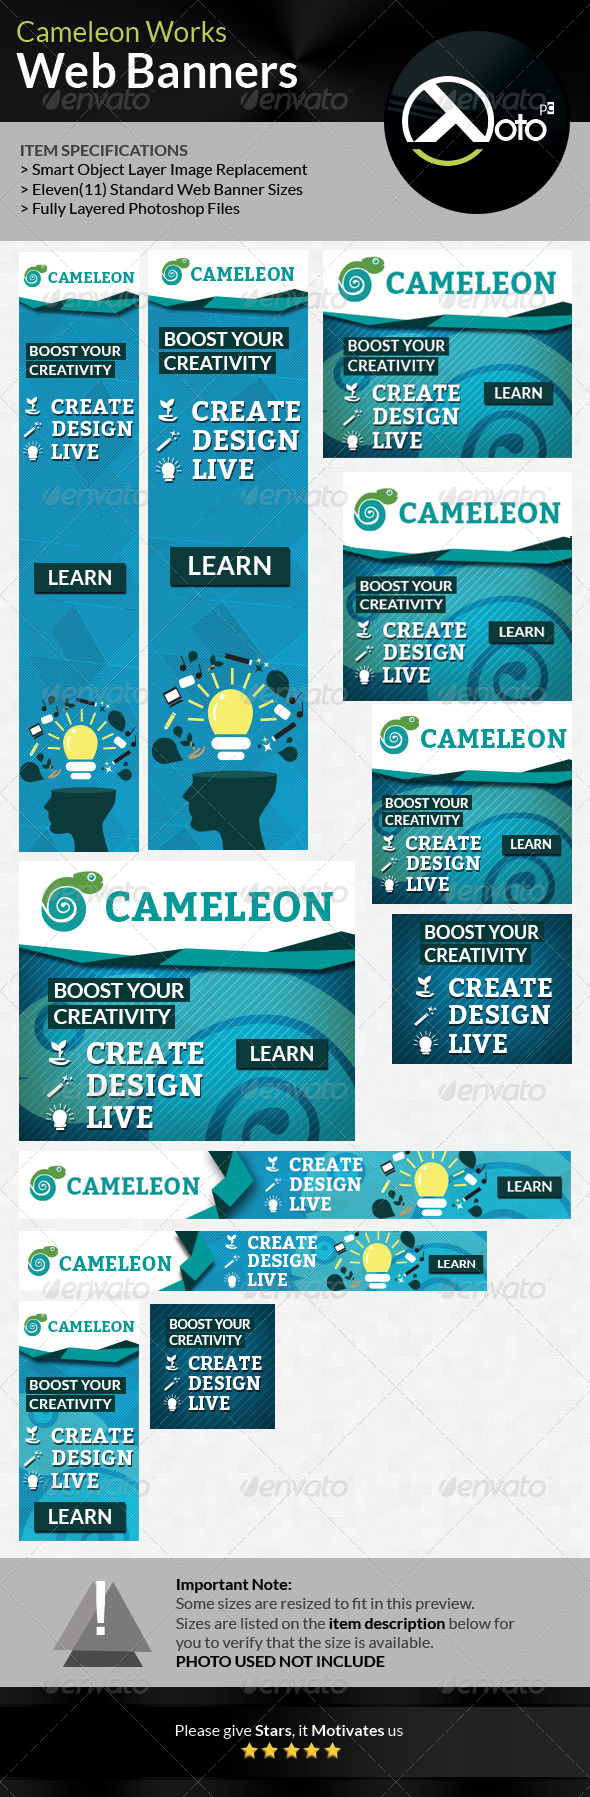 Cameleon Works Web Banners - Banners & Ads Web Elements